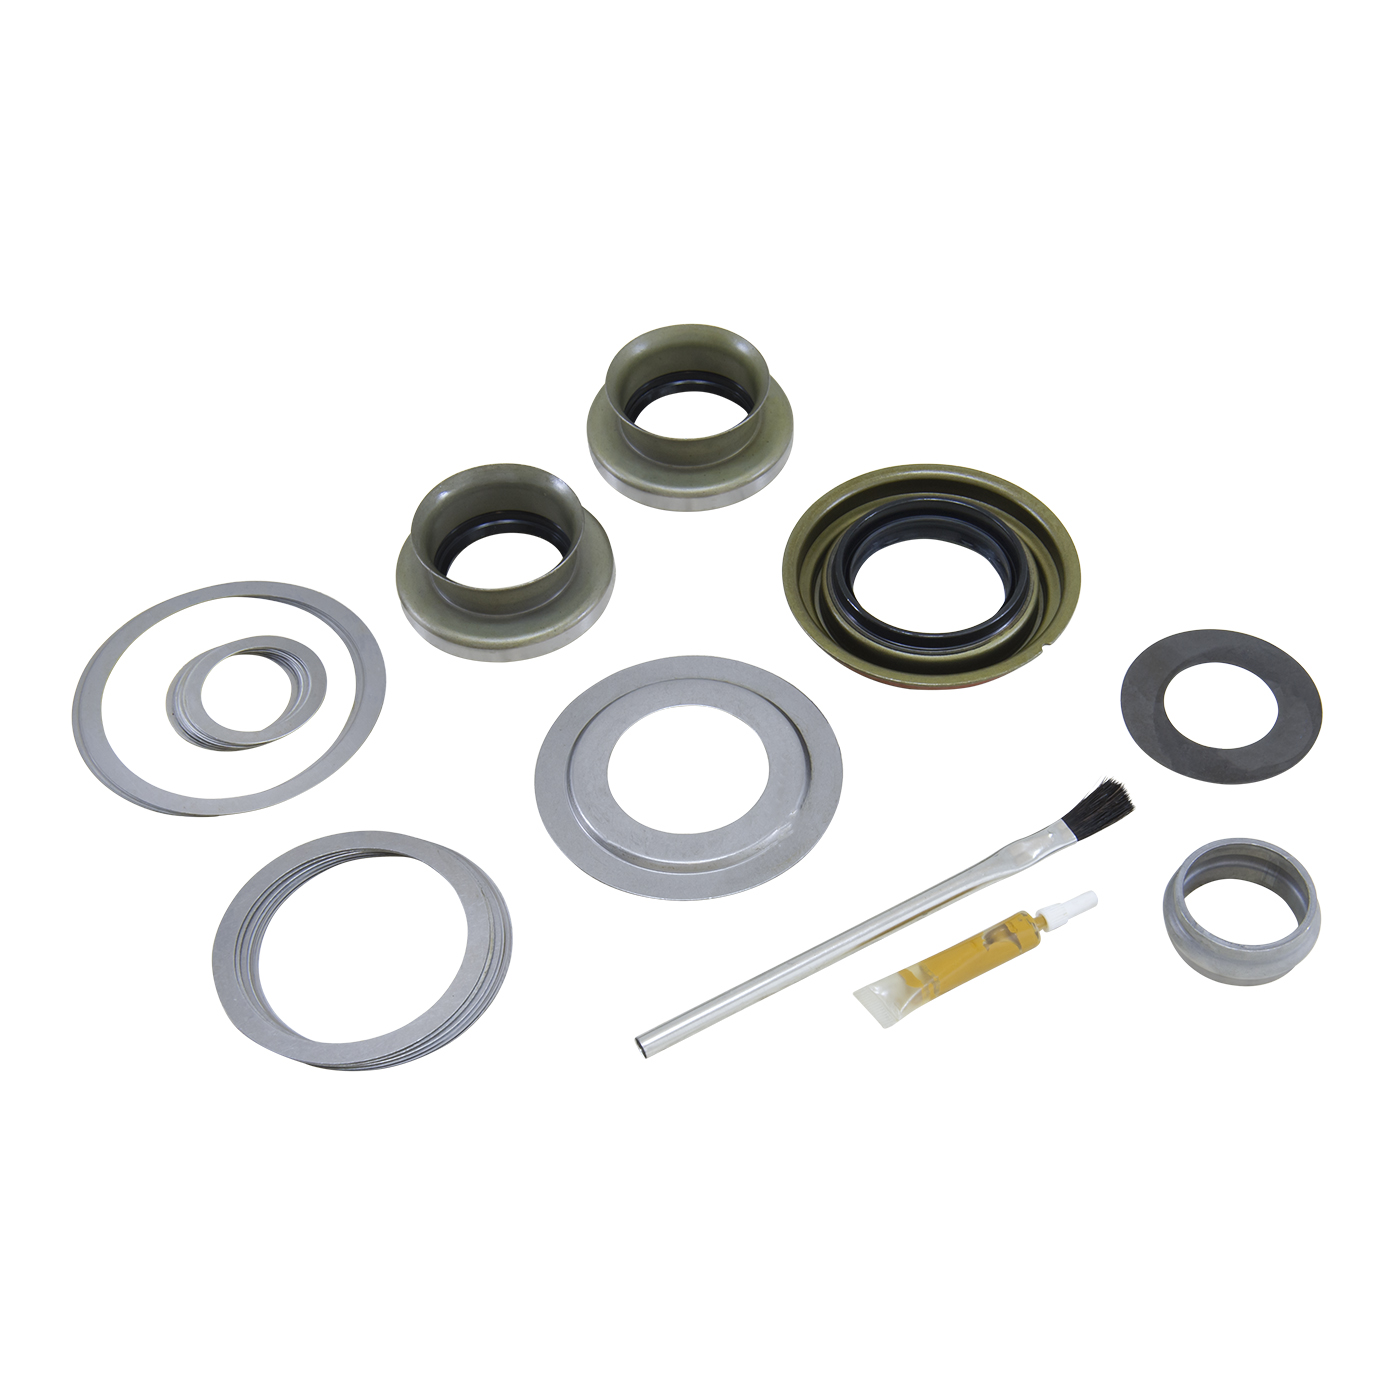 MK D60-F - Yukon Minor install kit for Dana 60 and 61 front differential